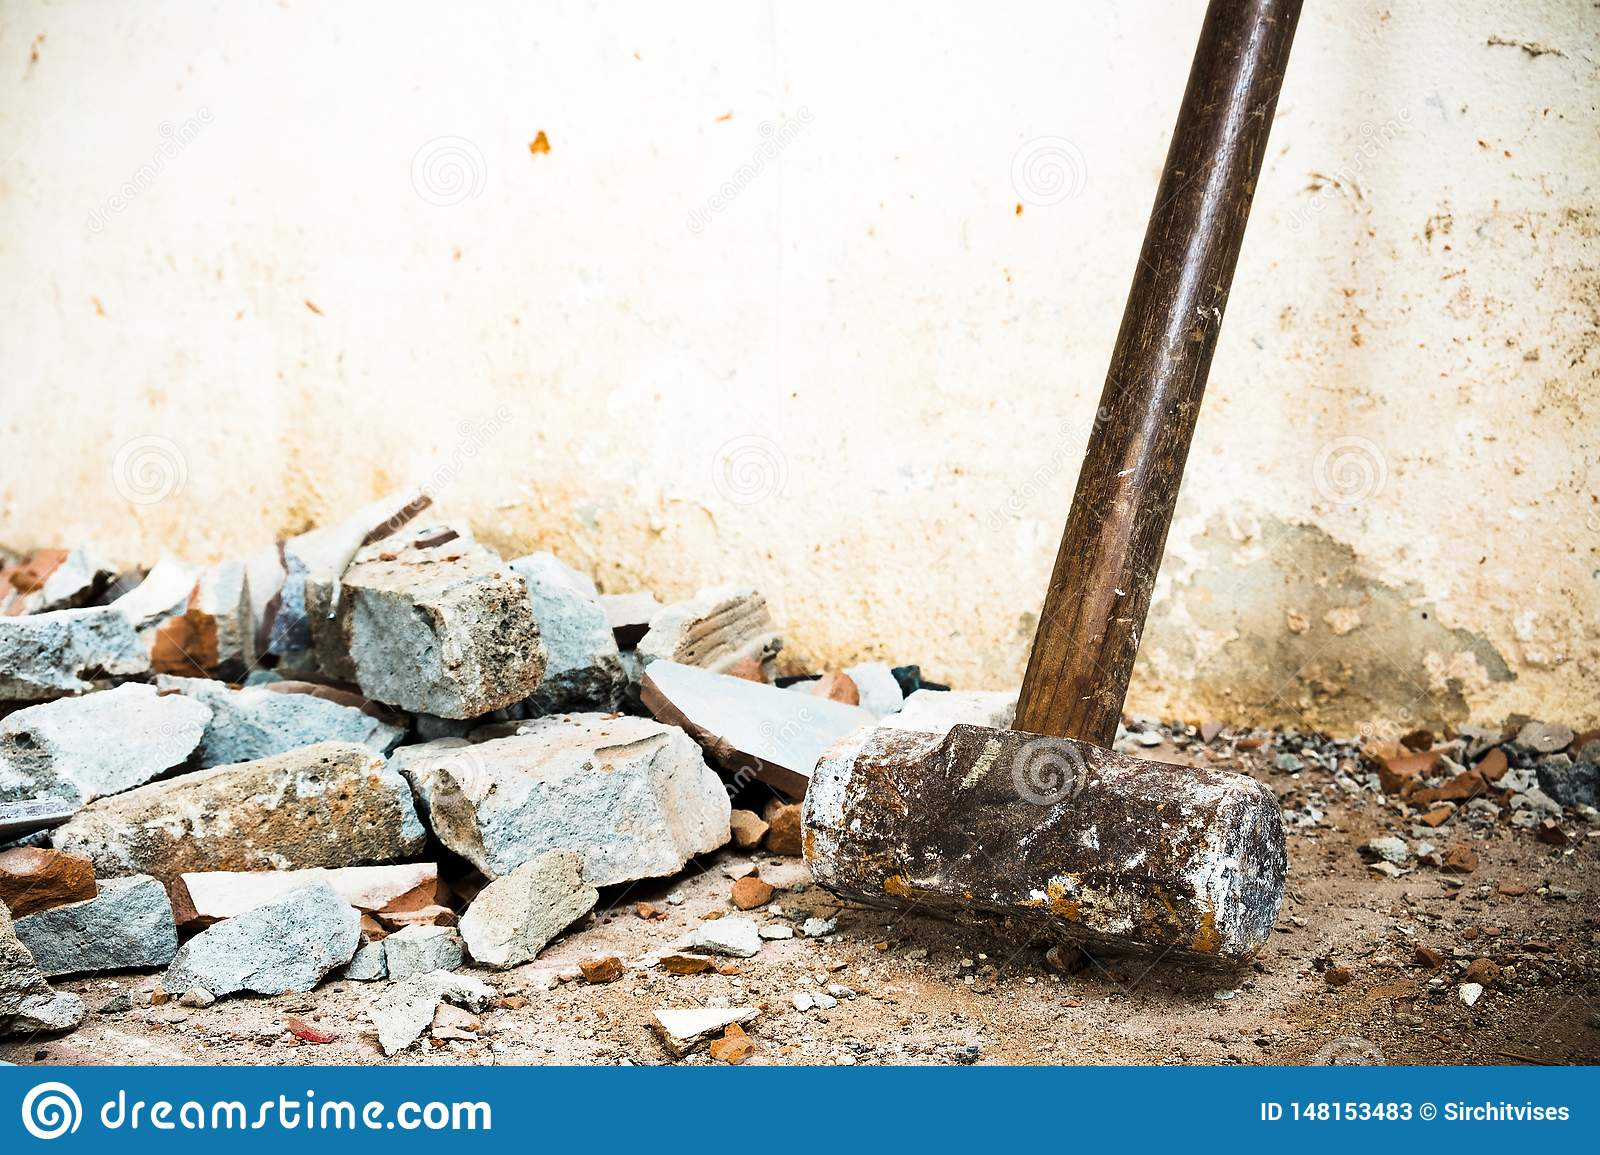 The House Of Hammer a hammer used to demolish the concrete tile floor and wall